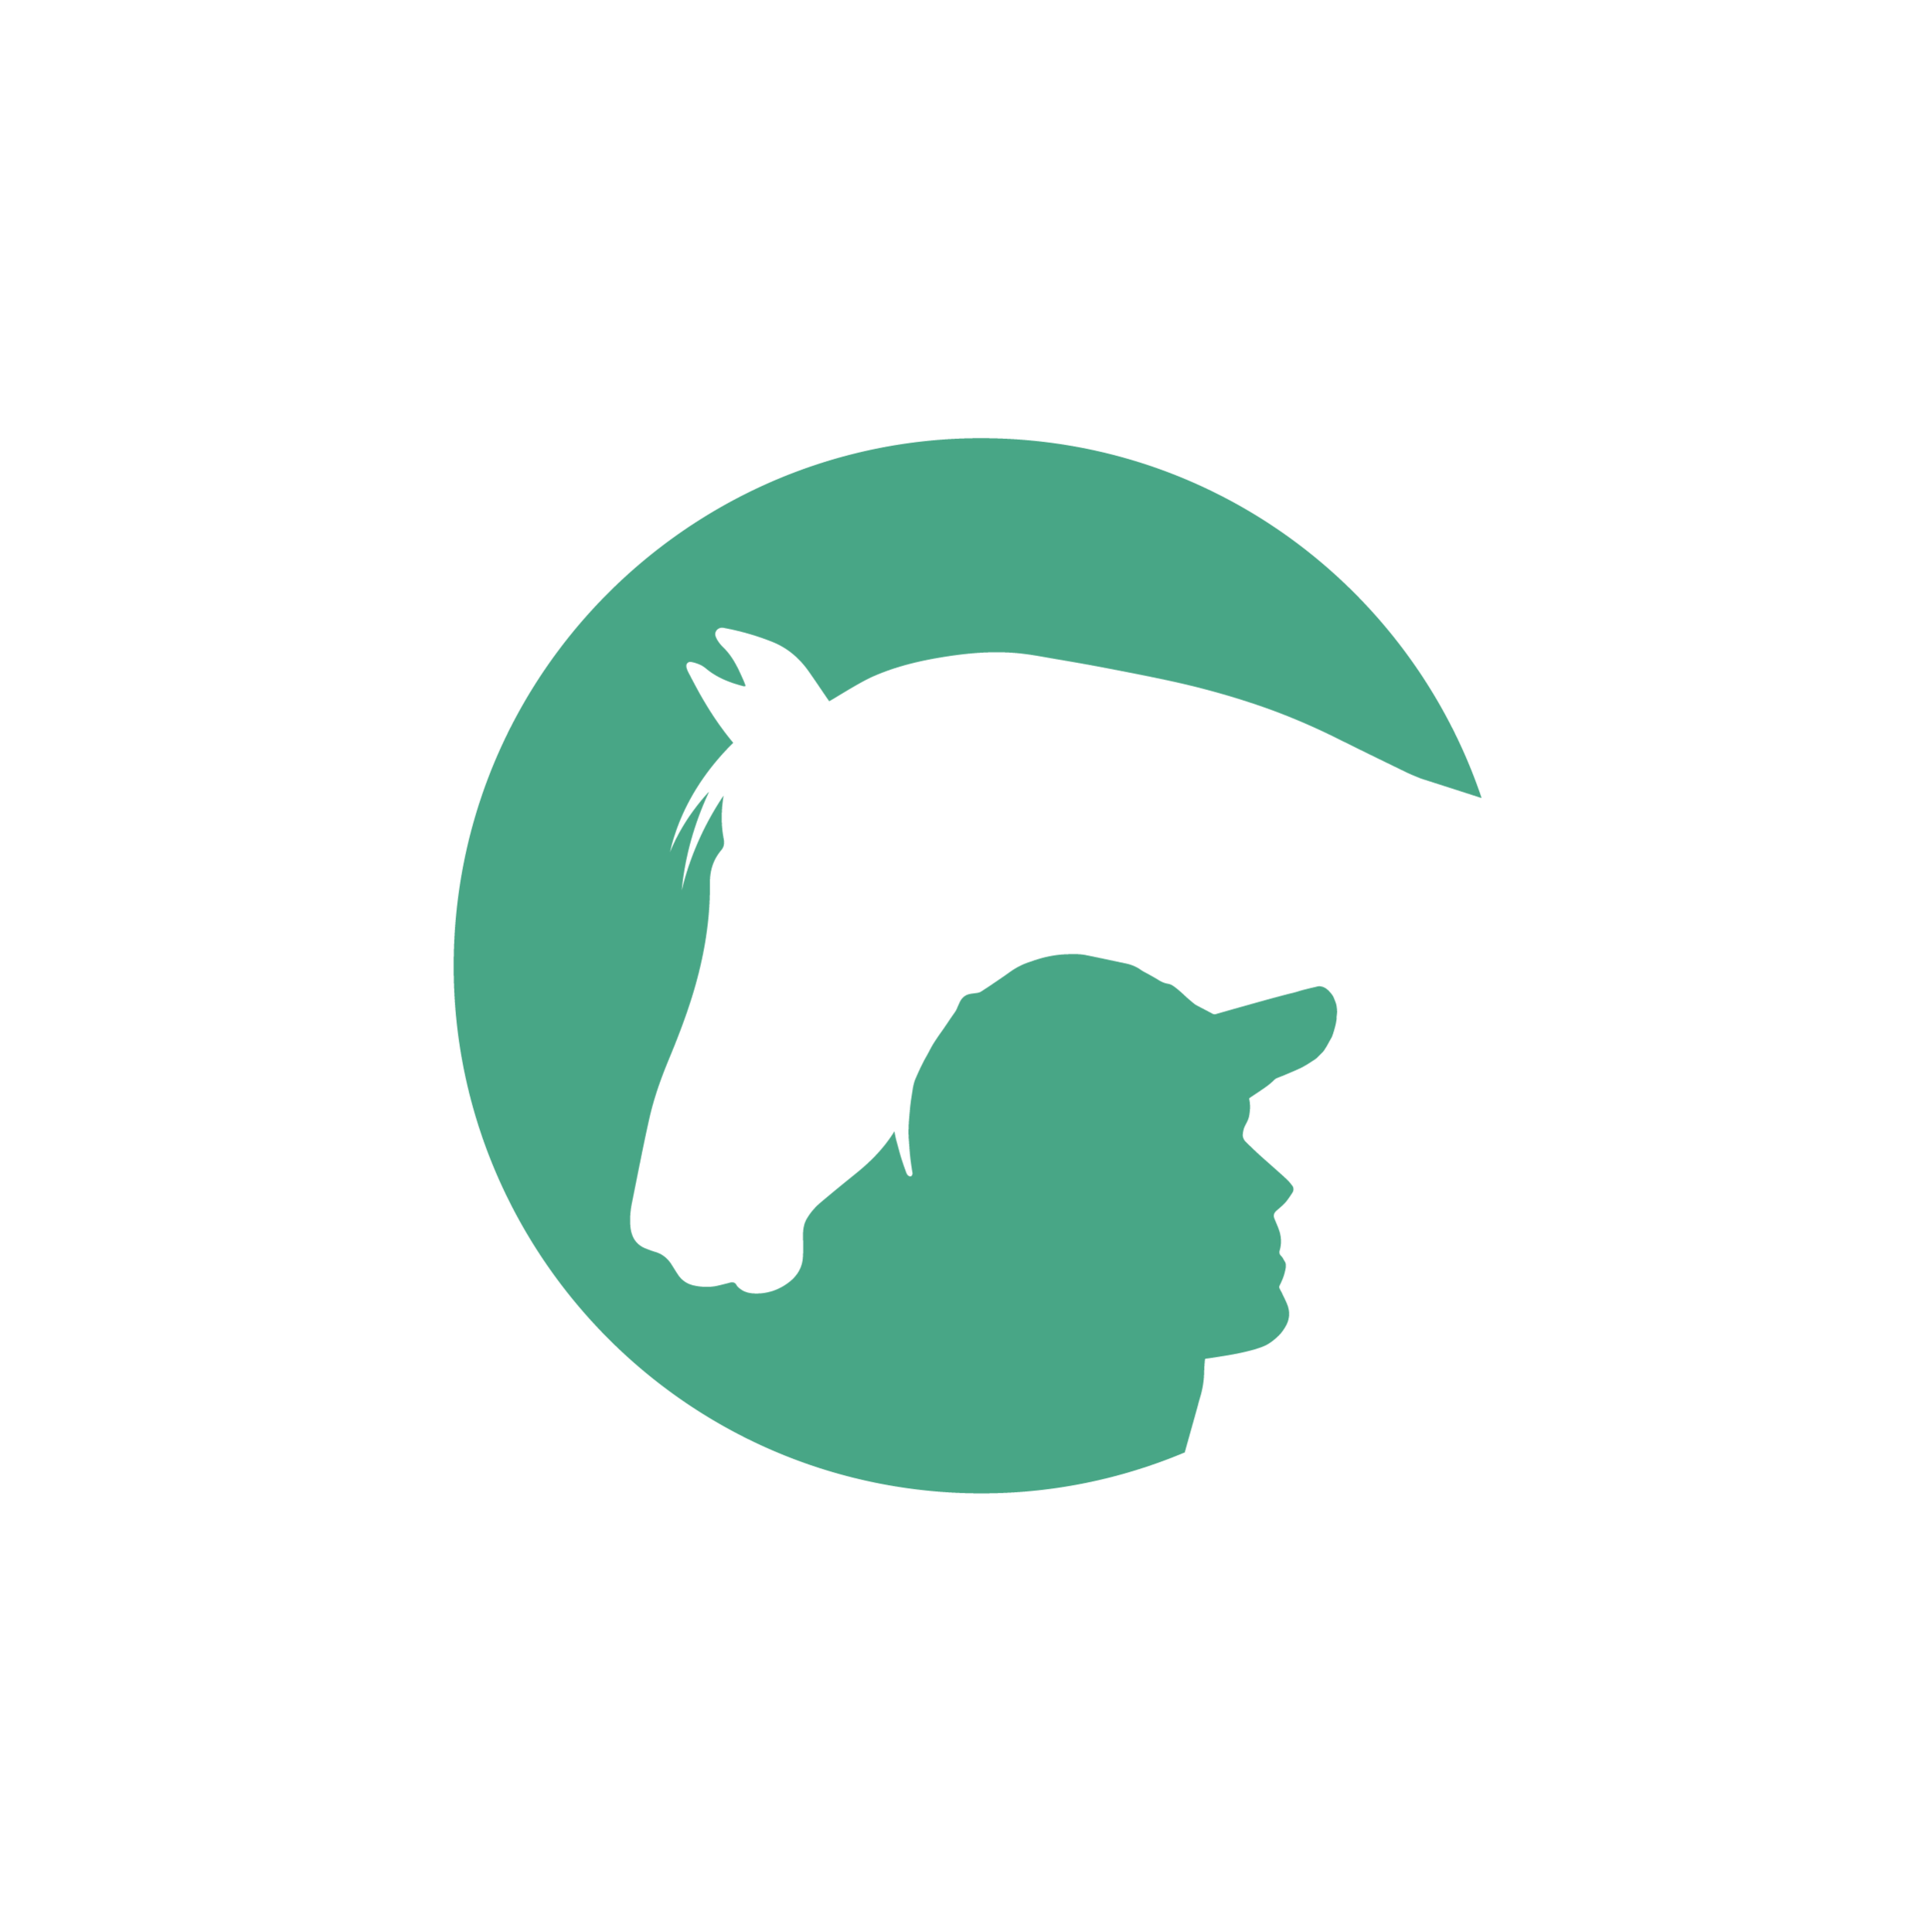 IAmHorseRacing_Icon_Green.png